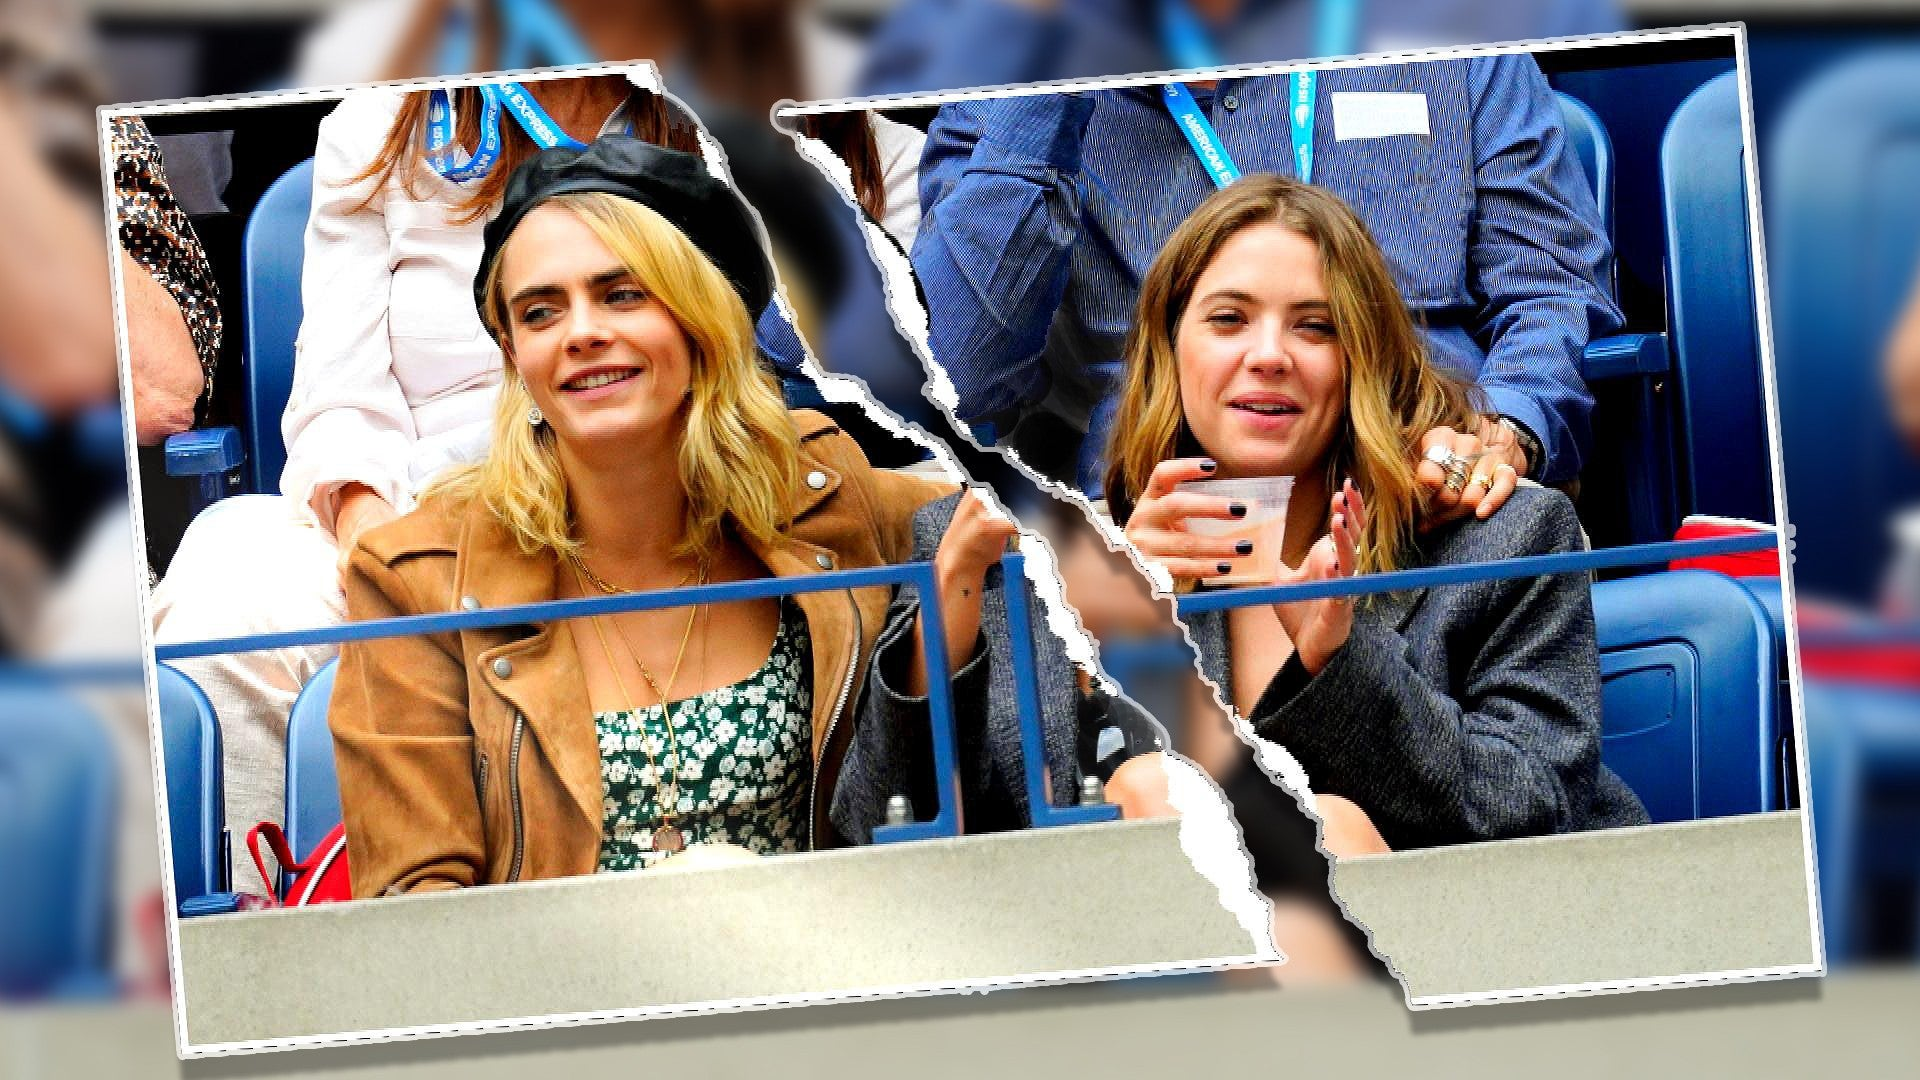 Cara Delevingne Tells Fans To Stop Hating On Ex Ashley Benson Entertainment Tonight